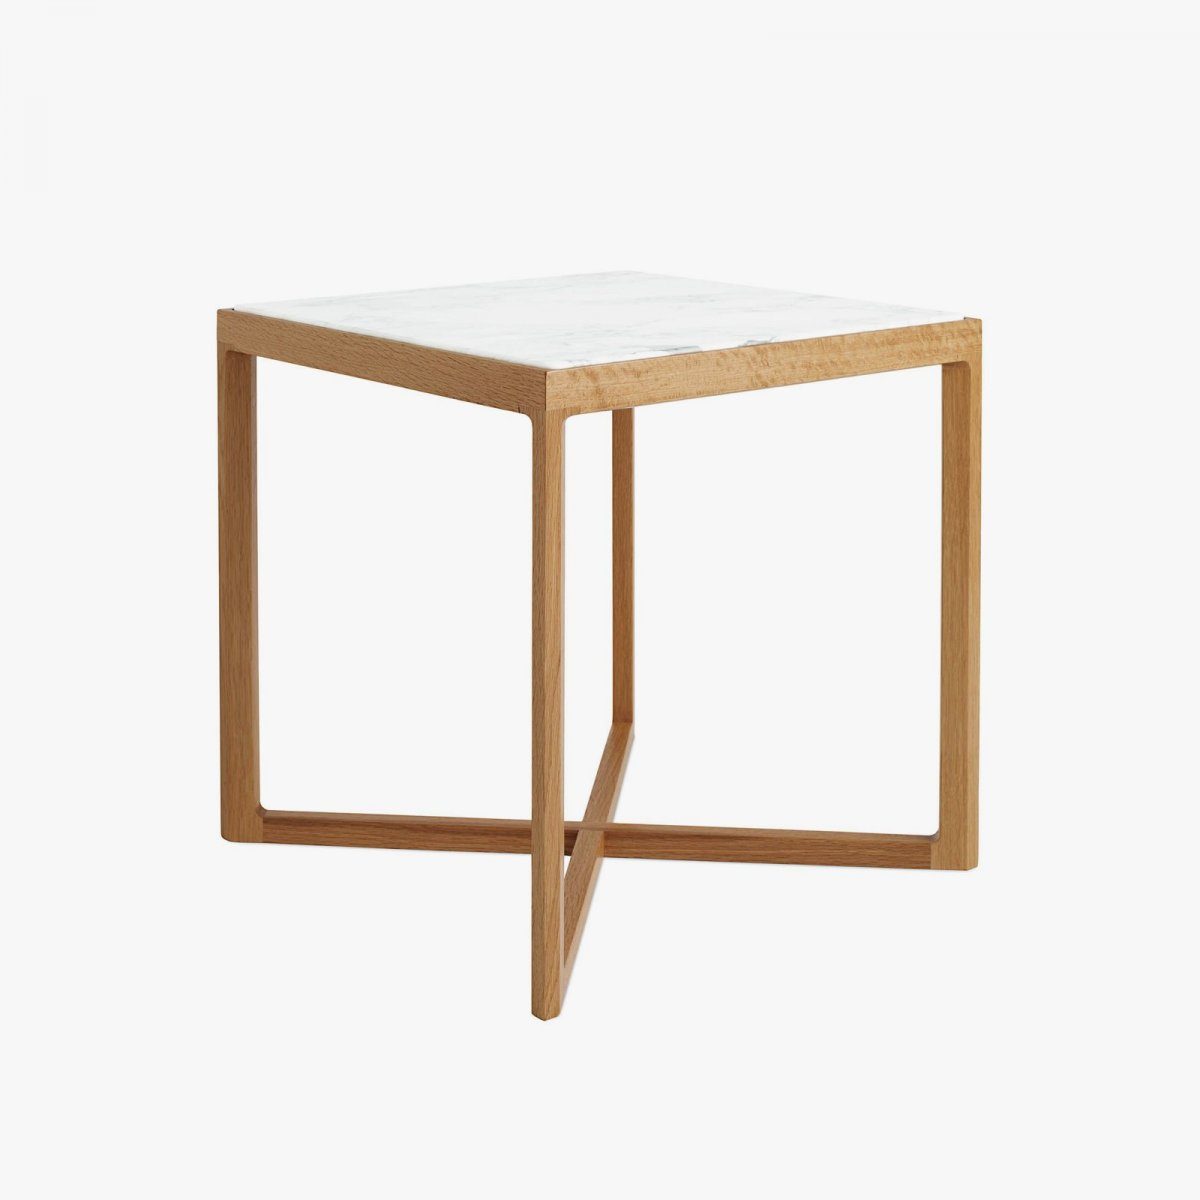 Krusin Side Table, oak + Arabescato marble.